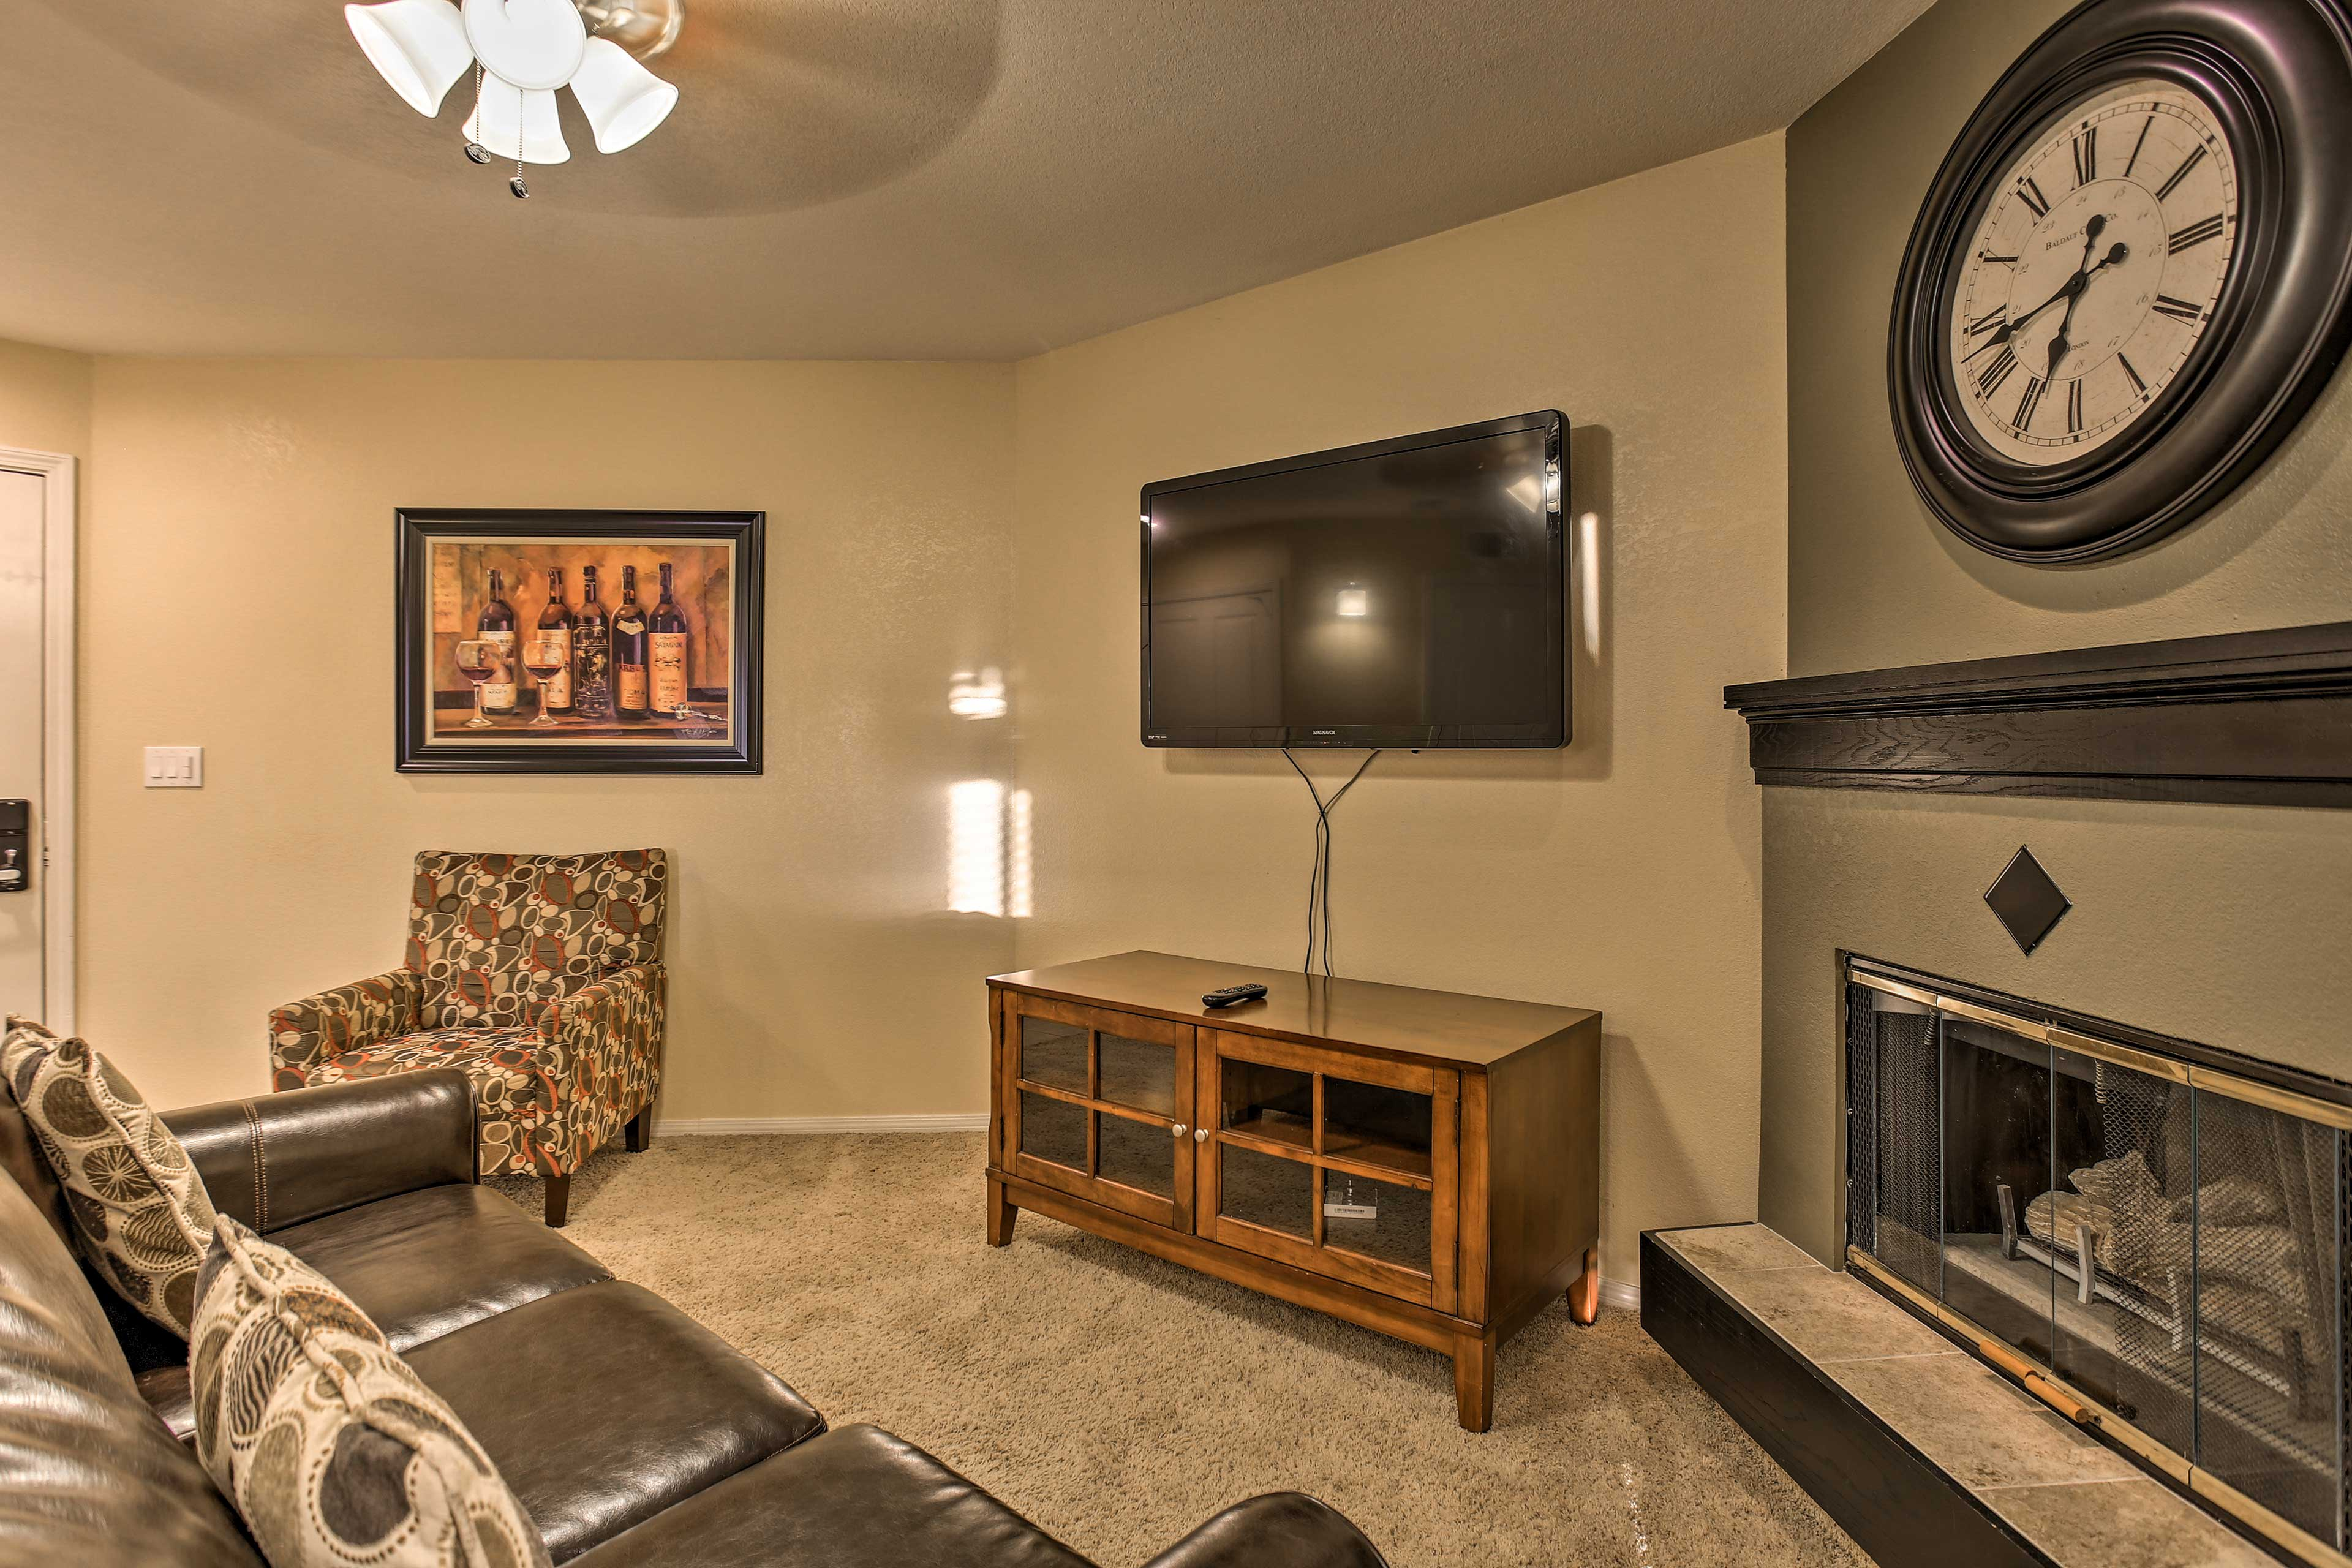 After a busy day, unwind in front of the electric fireplace in the living area.